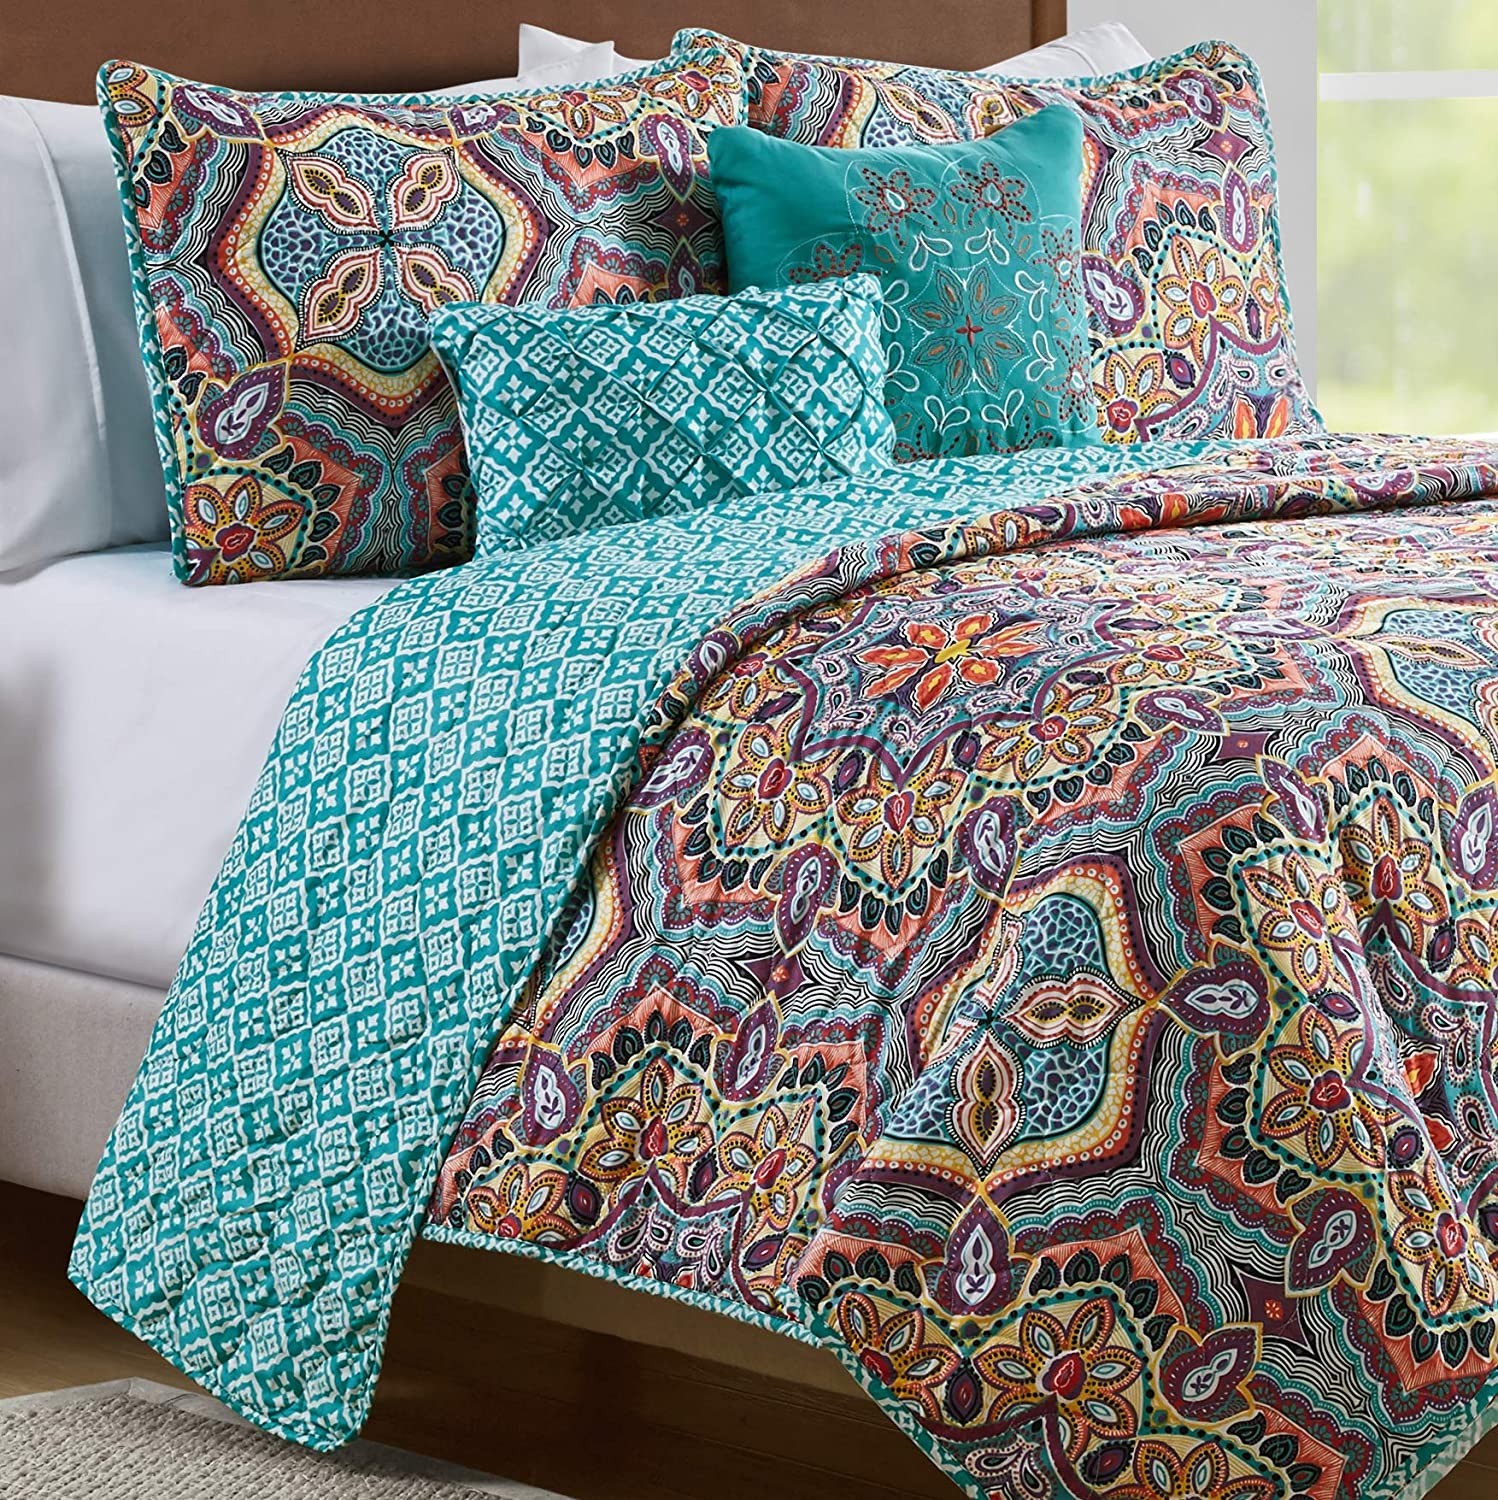 VCNY Home Yara Medallion 5 Piece Reversible Quilt Set, King, Aqua